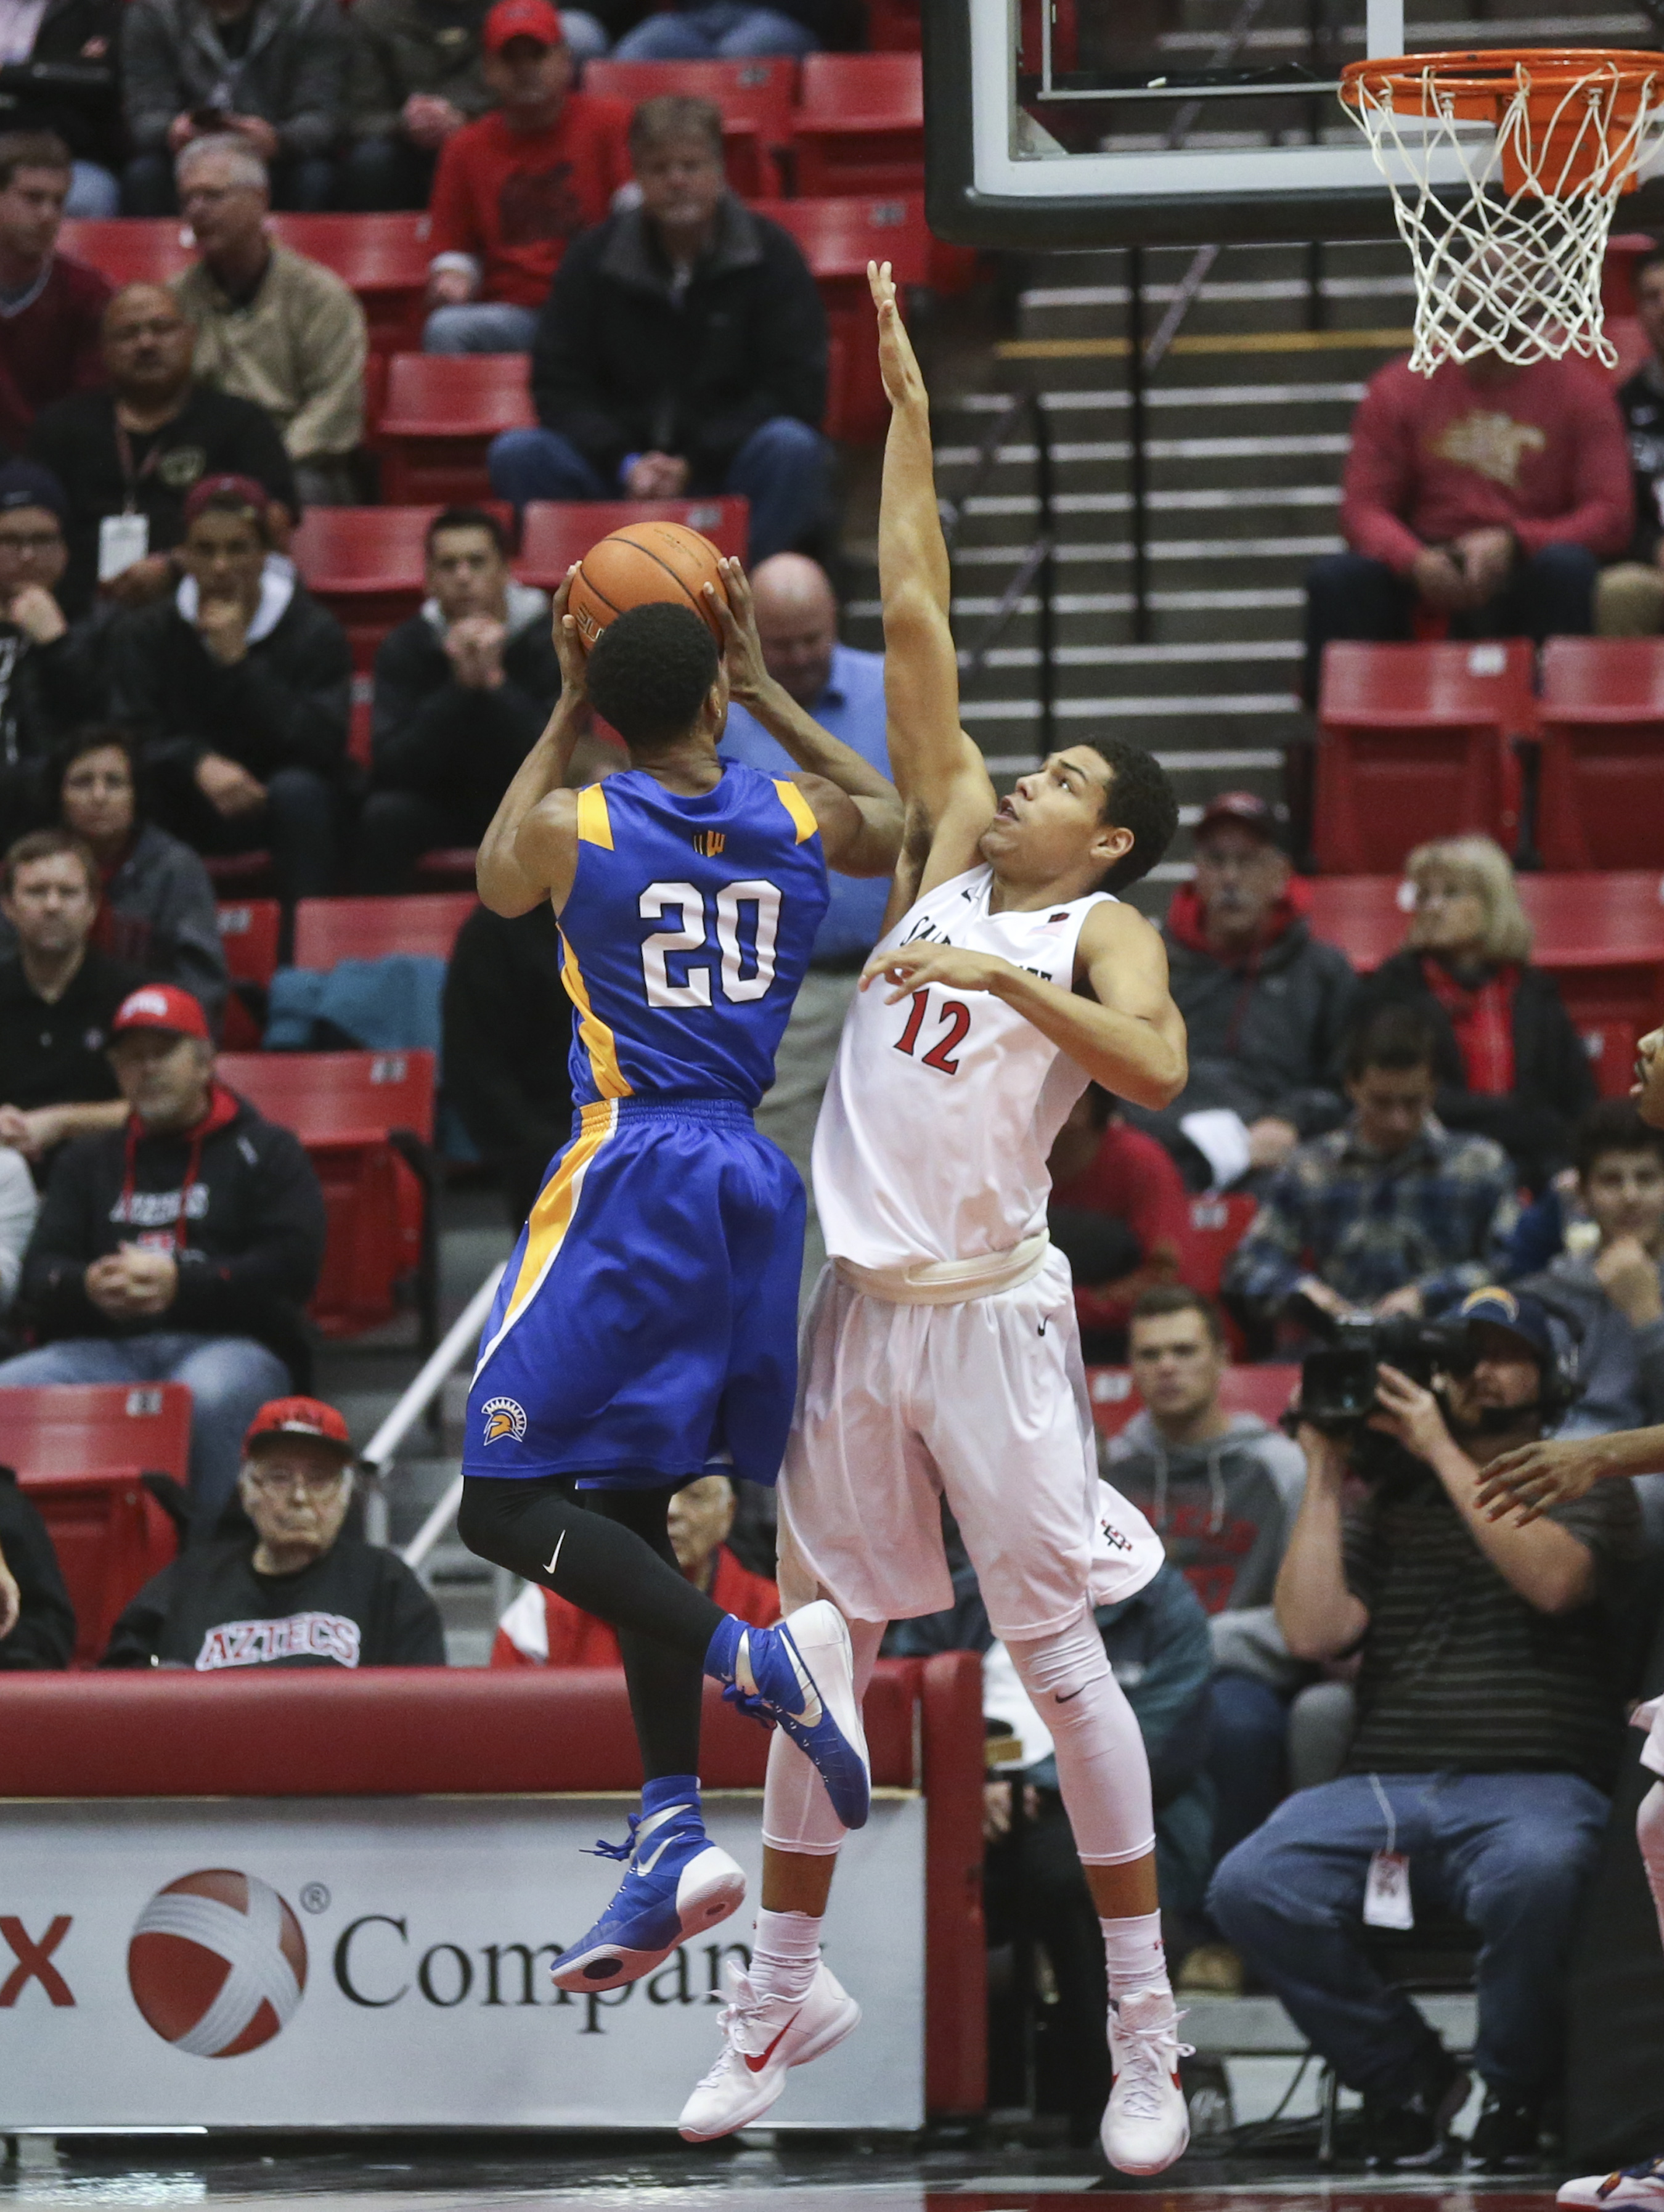 San Diego State guard Trey Kell gets enough of San Jose State guard Isaac Thornton to disrupt his shot attempt during the first half of a NCAA college basketball game Wednesday, Jan. 6, 2016, in San Diego.  (AP Photo/Lenny Ignelzi)